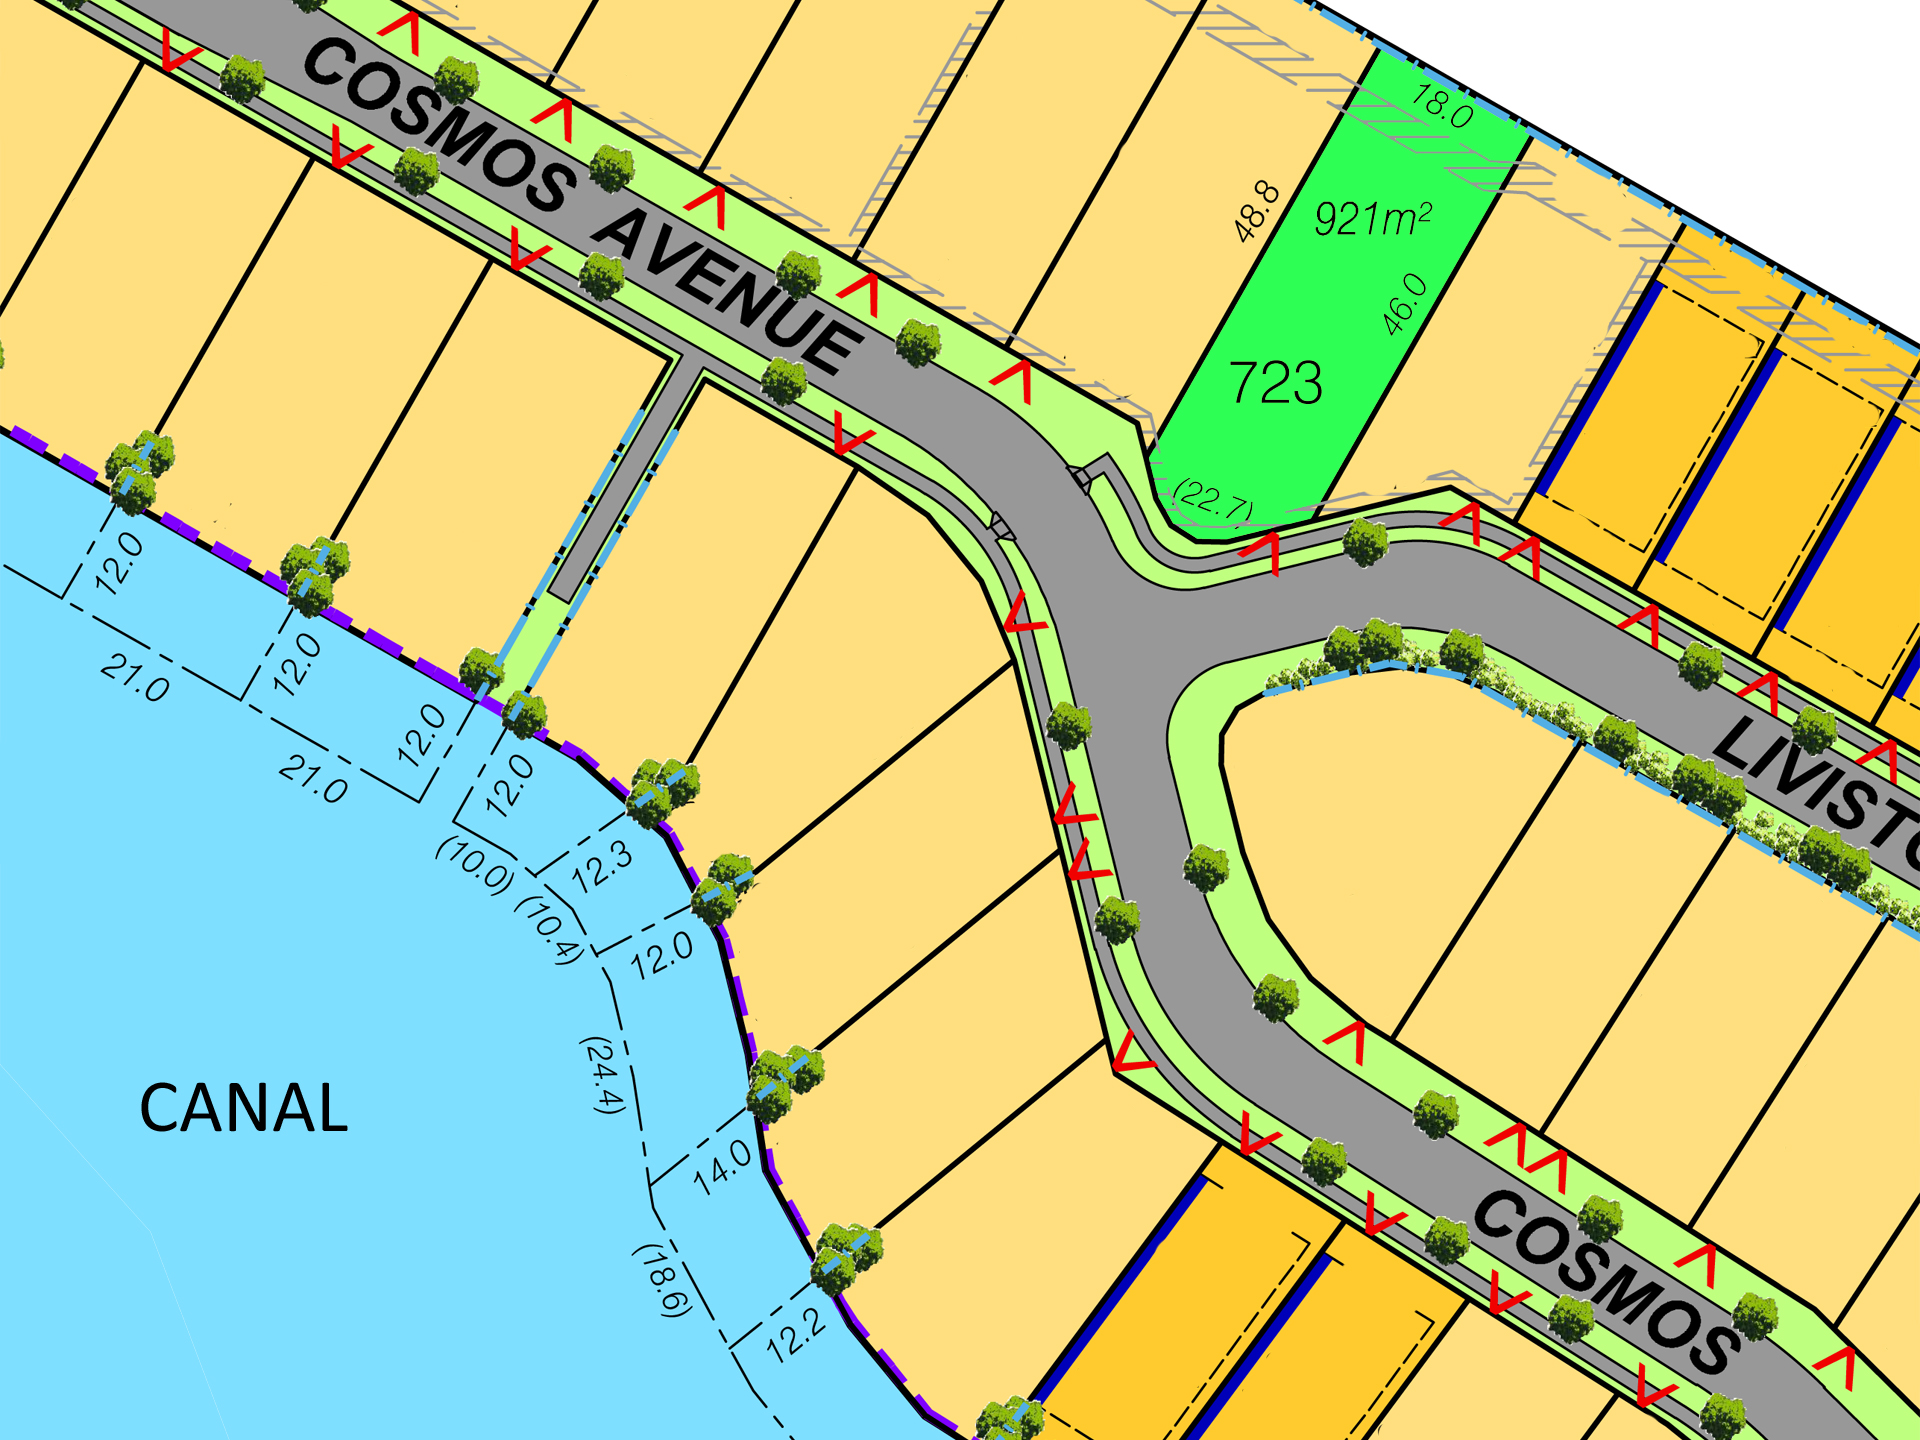 RARE WATERSIDE LAND OVER 900M2 ADJACENT CANALS